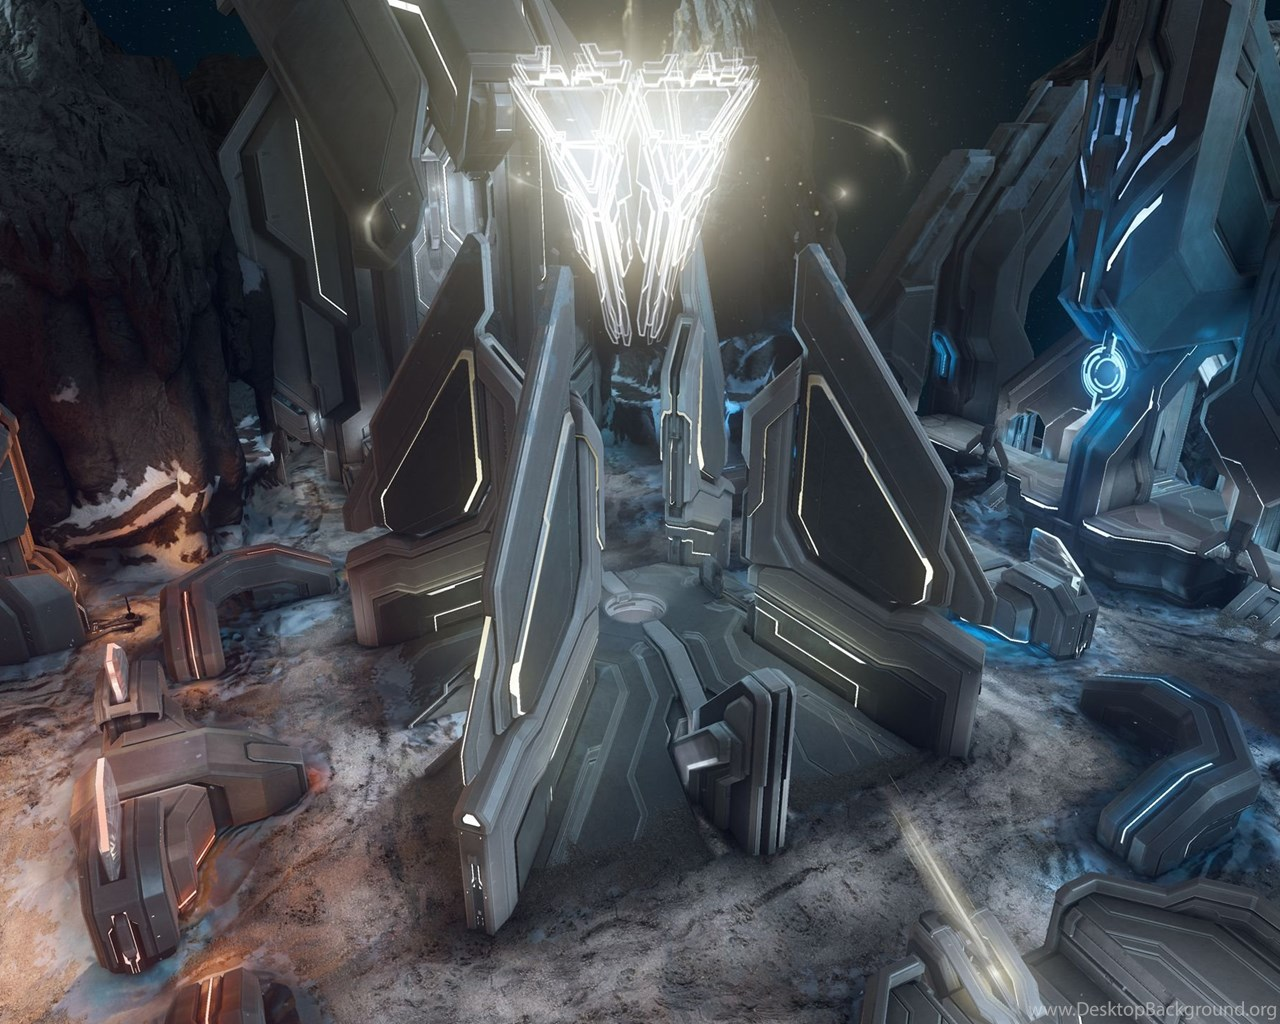 Halo 4 Majestic Map Pack, 2560x1440 HD Wallpapers And FREE